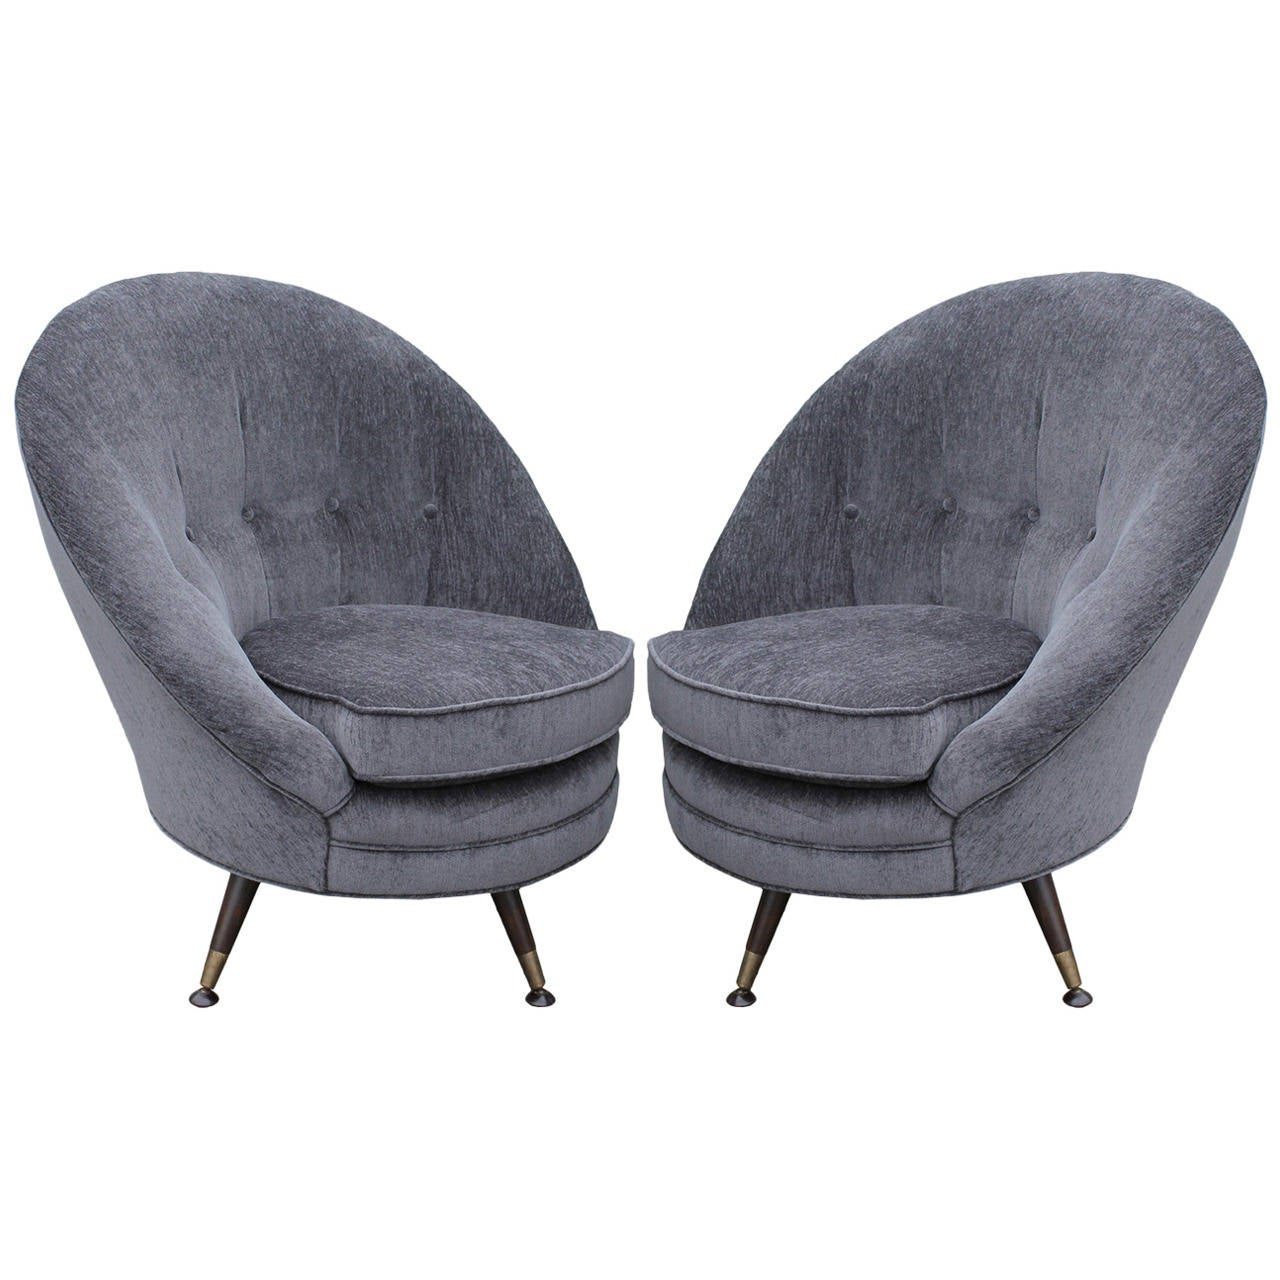 luxe pair of unusual grey swivel chair at 1stdibs